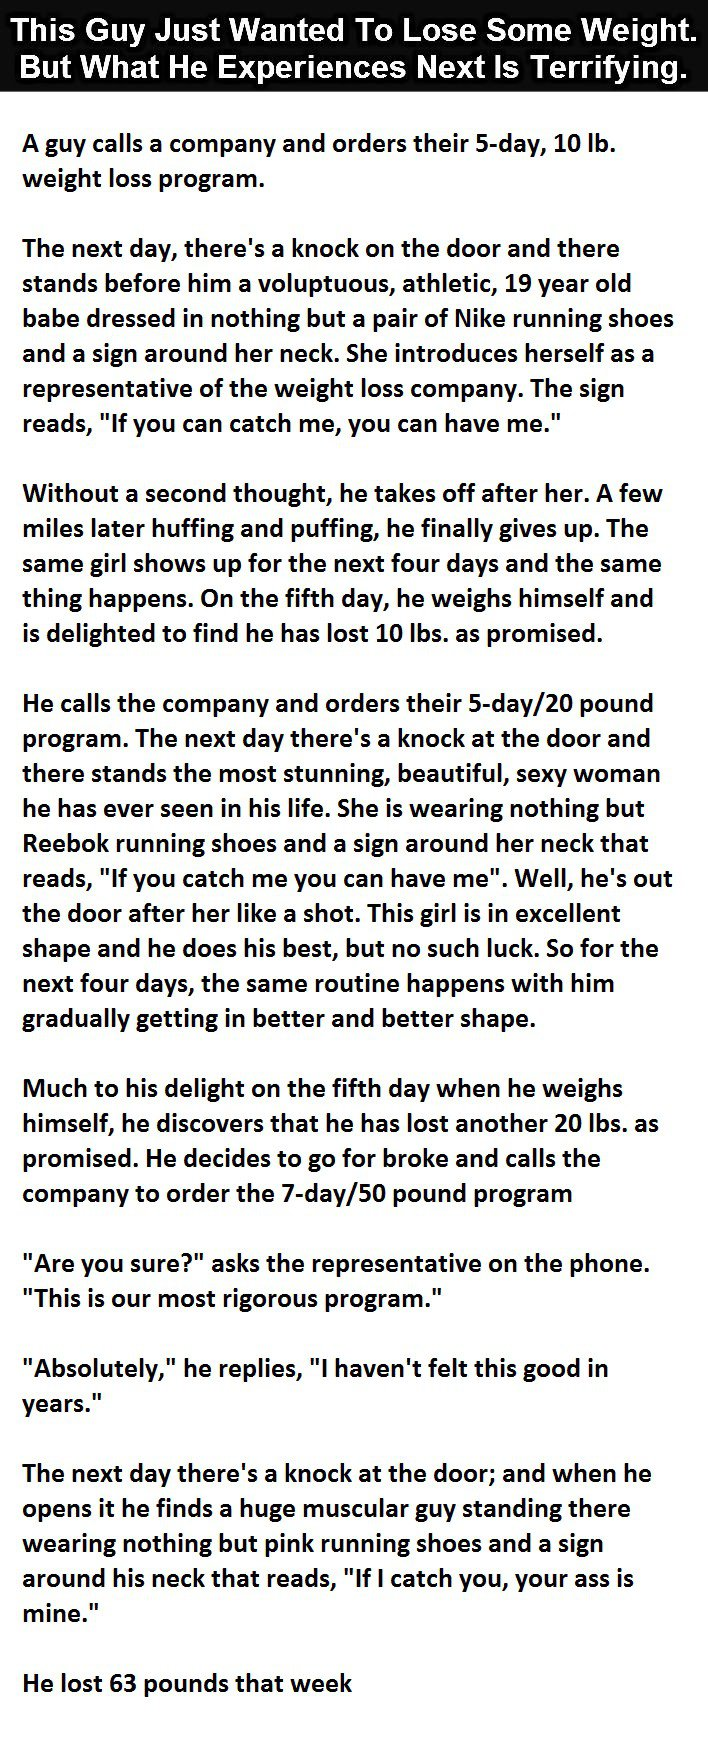 The Most Effective Weight Loss Program Ever. This Is Priceless.